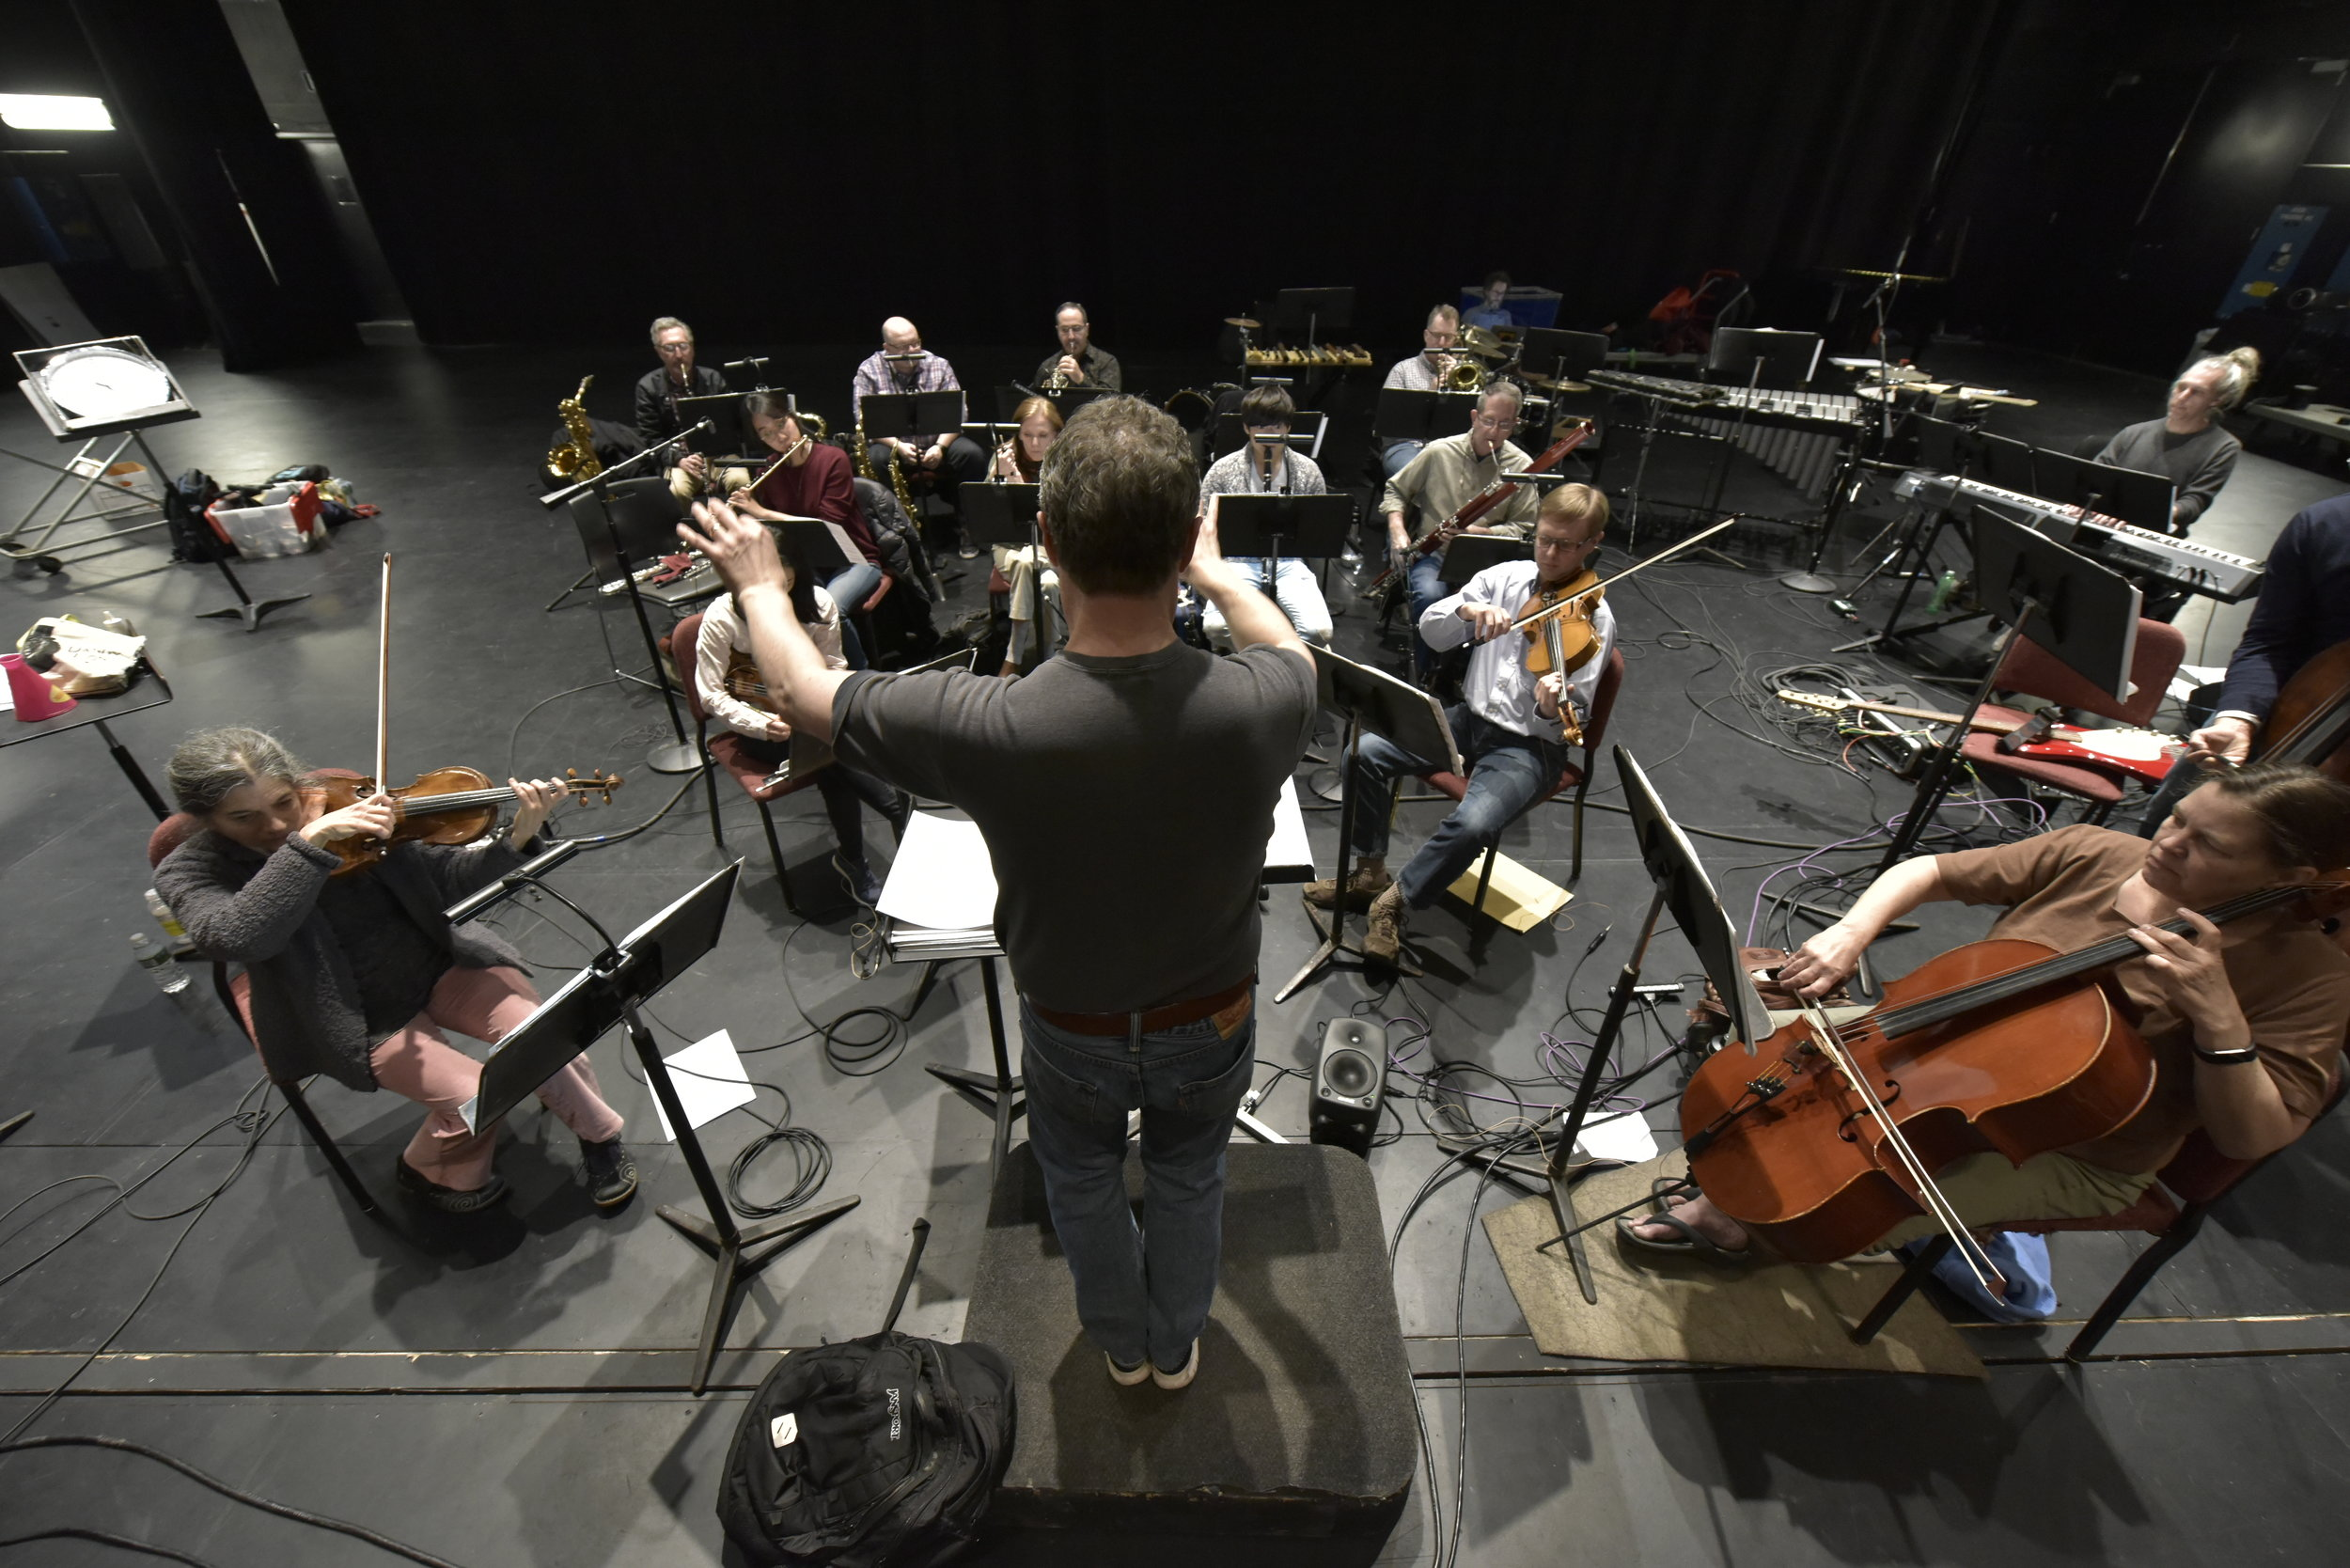 The tour began on Monday evening at EMPAC.  Members of the Albany Symphony's Dogs of Desire rehearsed the Liederabend that they will bring to Blind Whino, an alternative arts space in SW, DC.